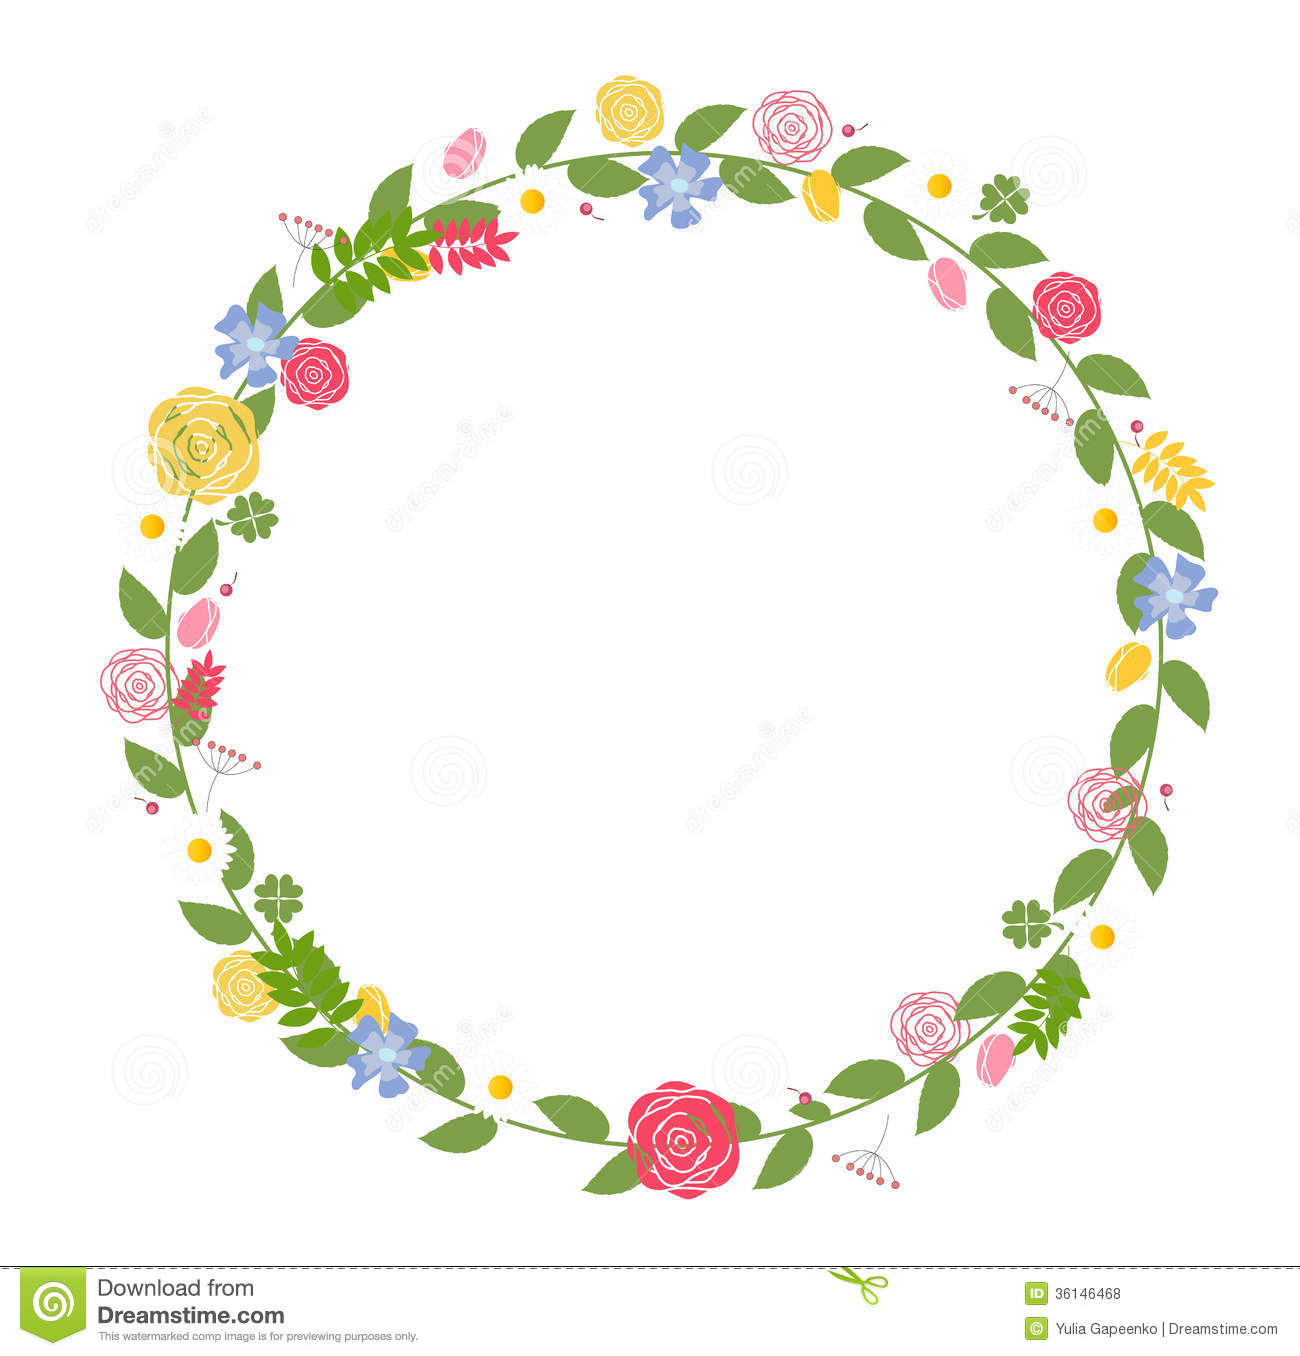 Floral Vector Borders and Frames